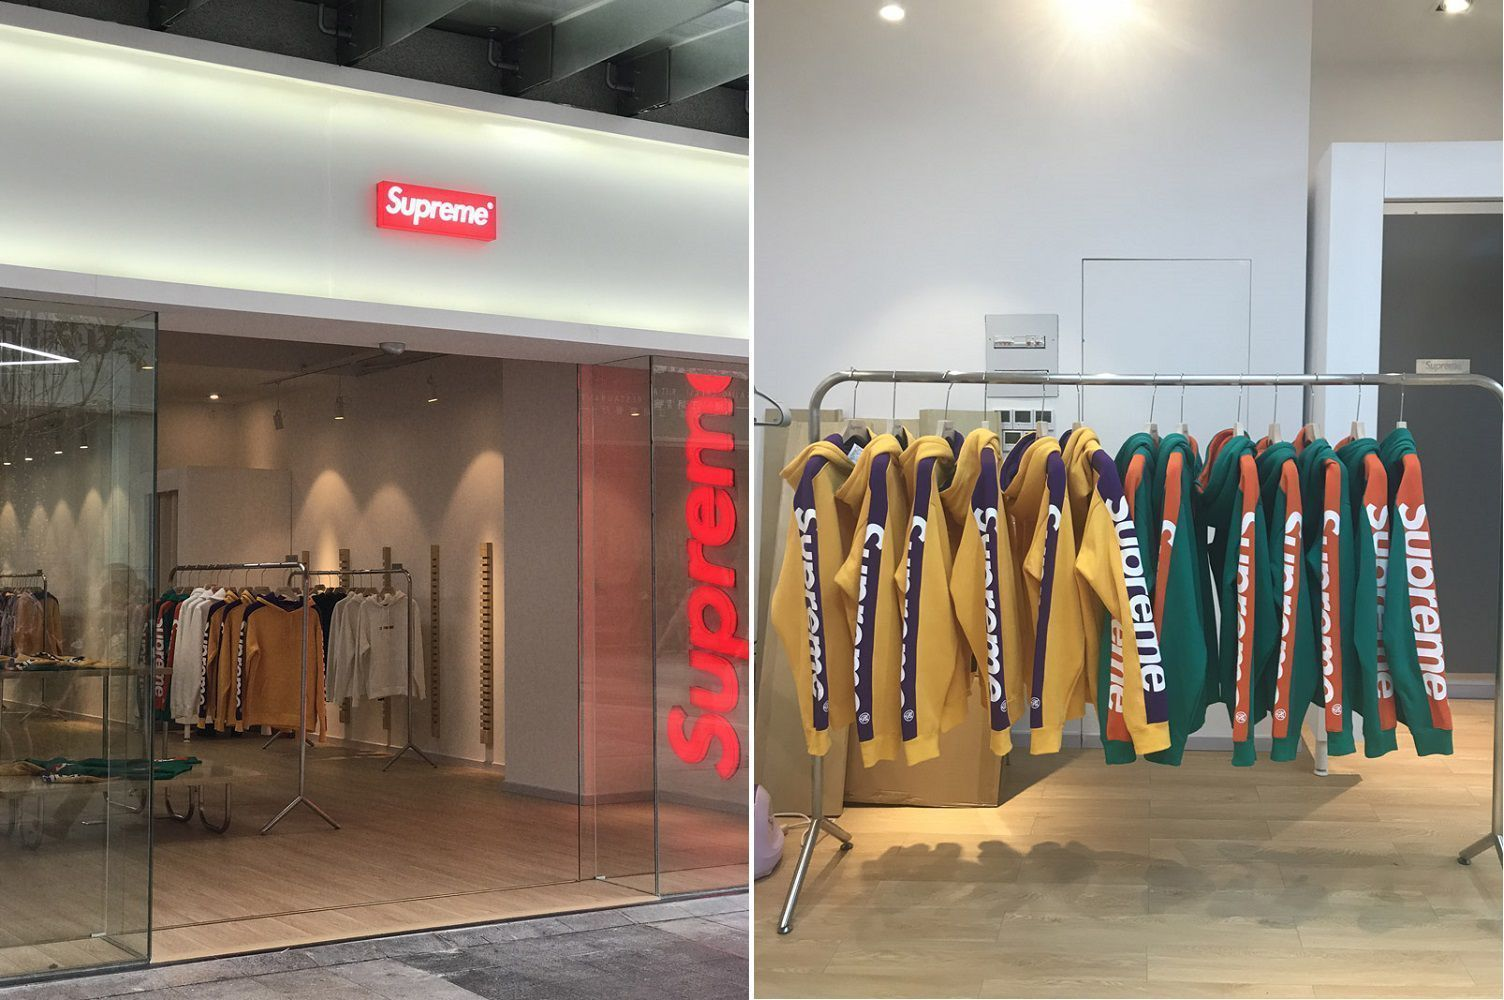 Fake Supreme store - China